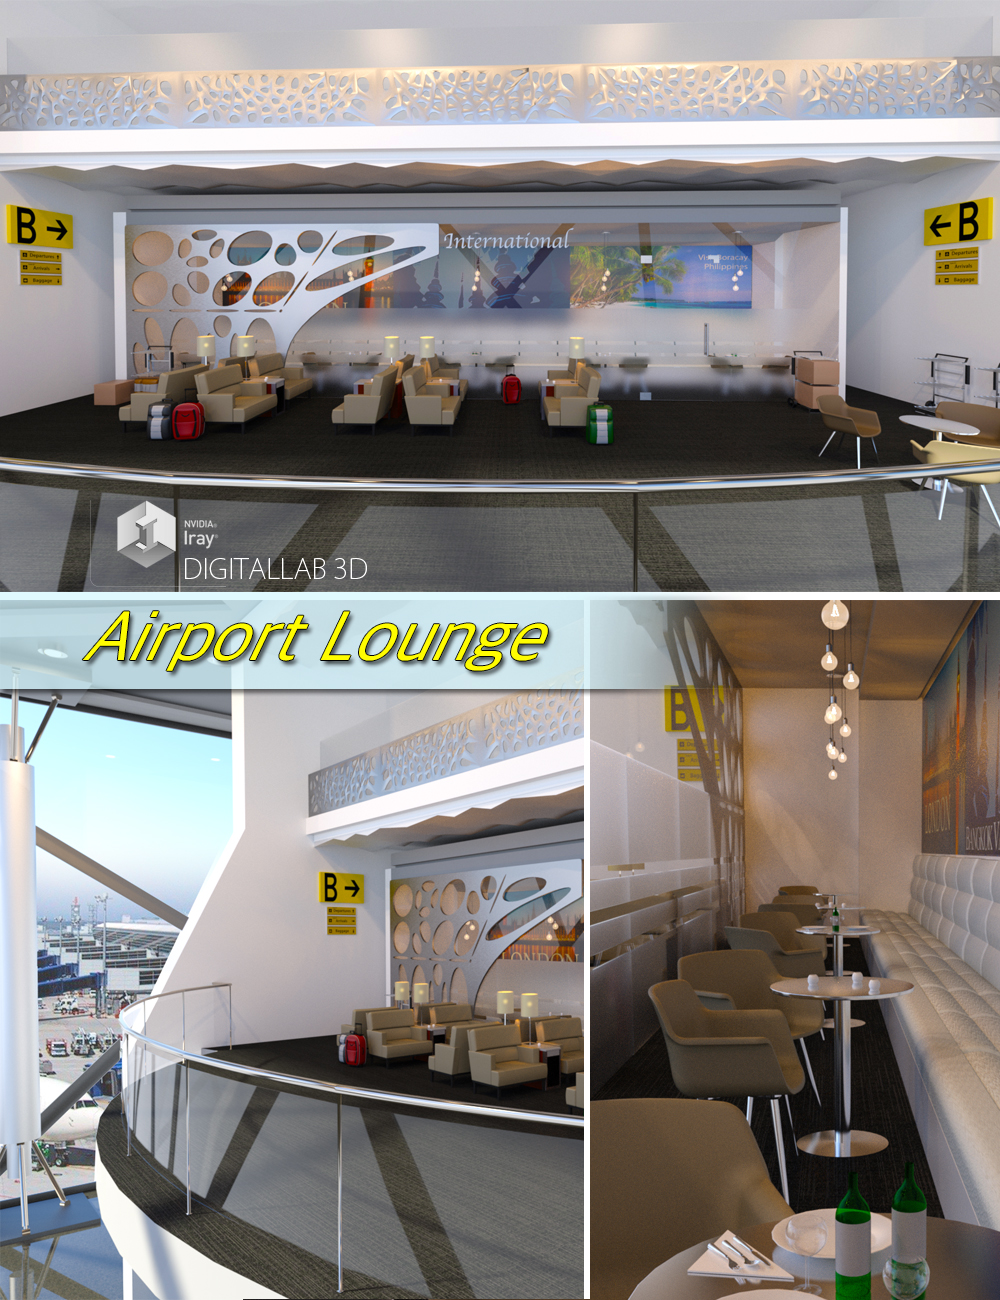 Airport Lounge by: Digitallab3D, 3D Models by Daz 3D